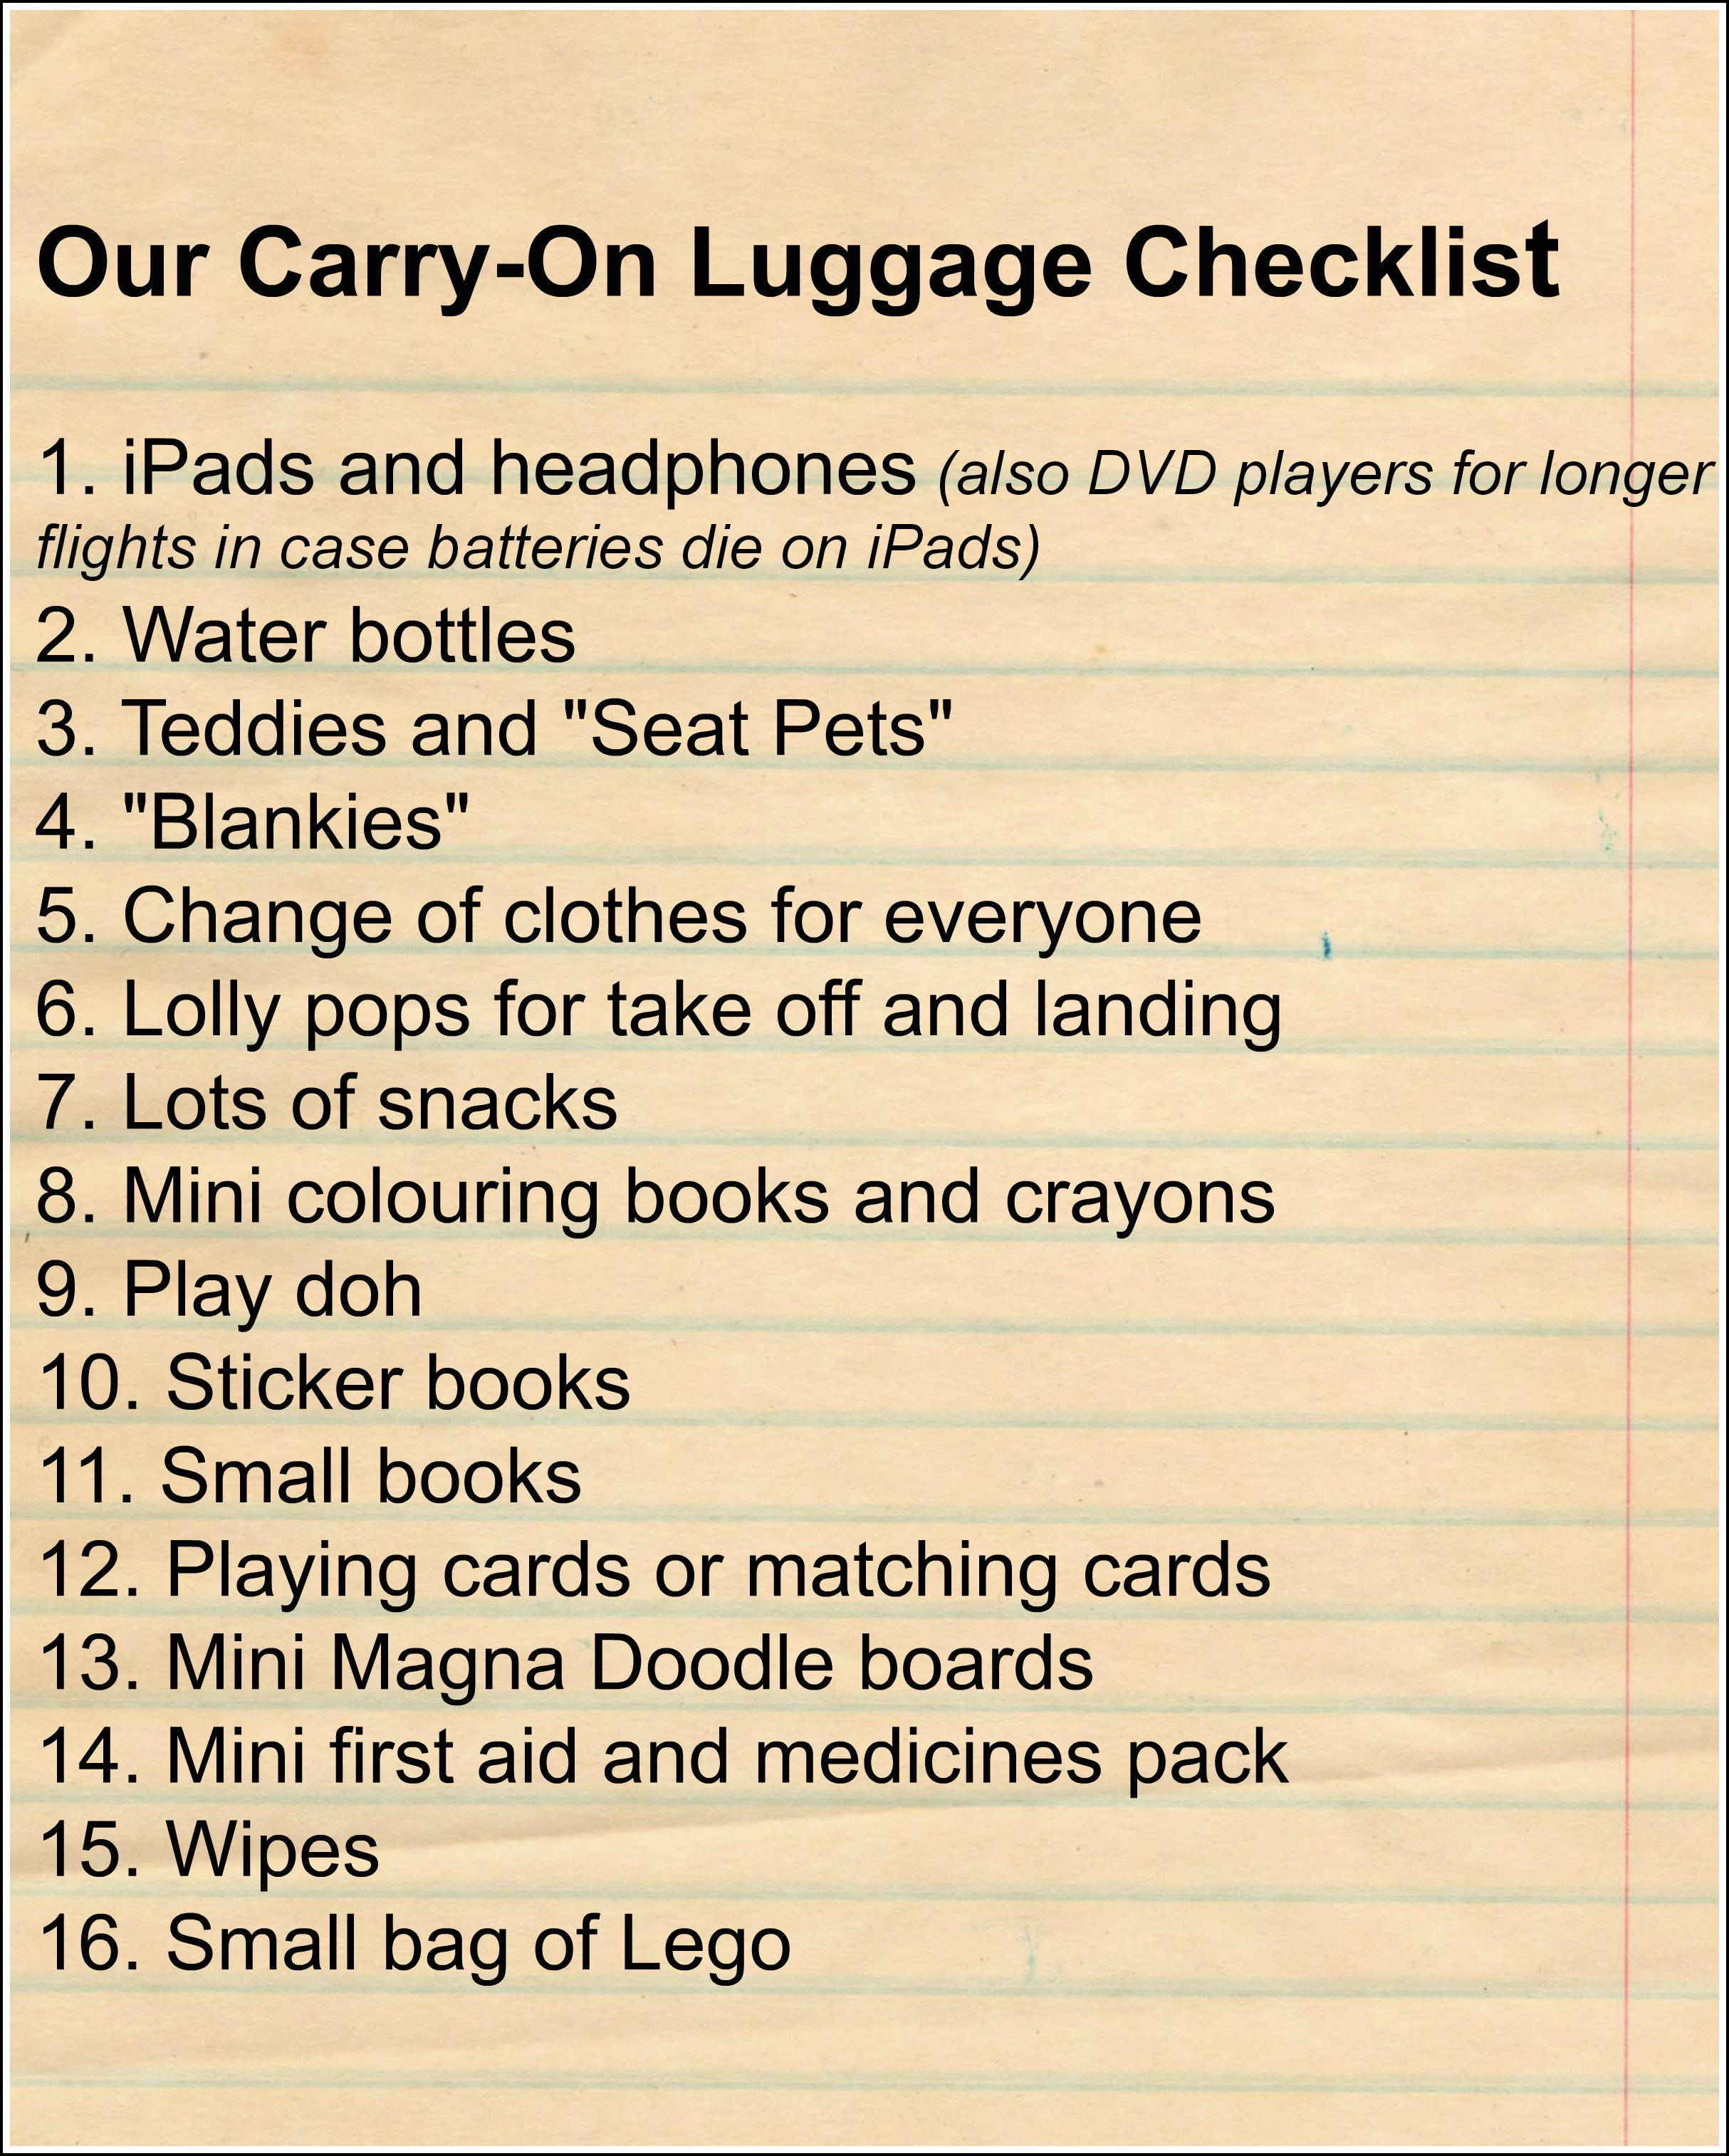 Tips for travelling with kids part 2 packing tips and How to pack a carry on suitcase video